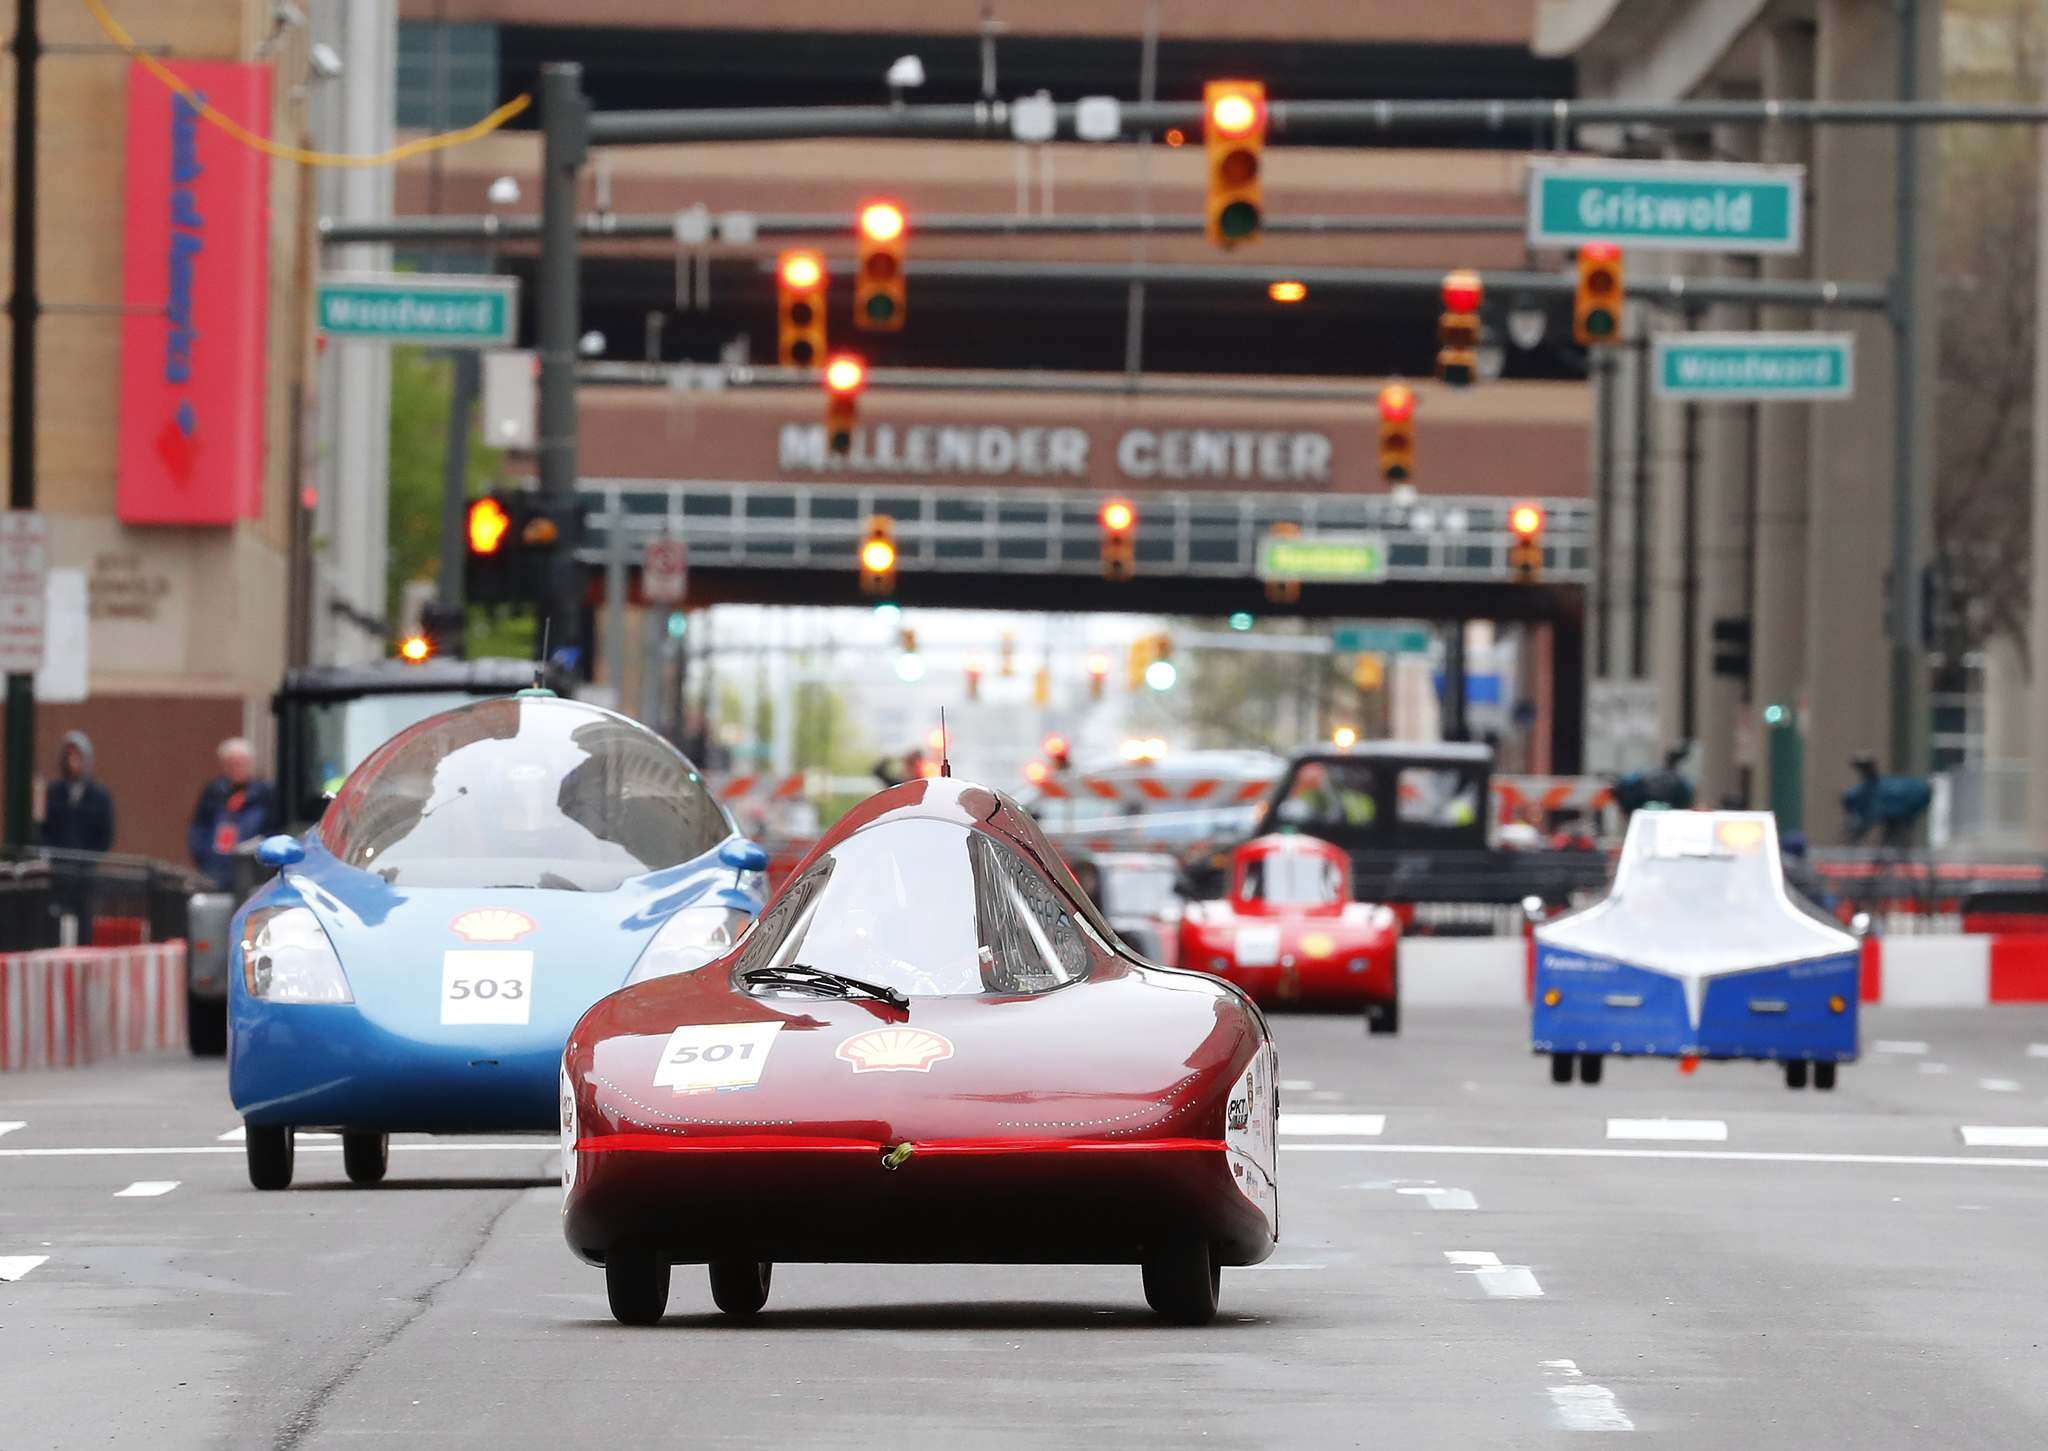 Rick Osentoski / The Associated Press filesThe Elroy (second from left), a gasoline urban concept vehicle racing for team Mater Dei Supermileage, leads a pack of cars on the track during the final day of the Shell Eco-marathon Americas 2017 at the Cobo Center in Detroit.